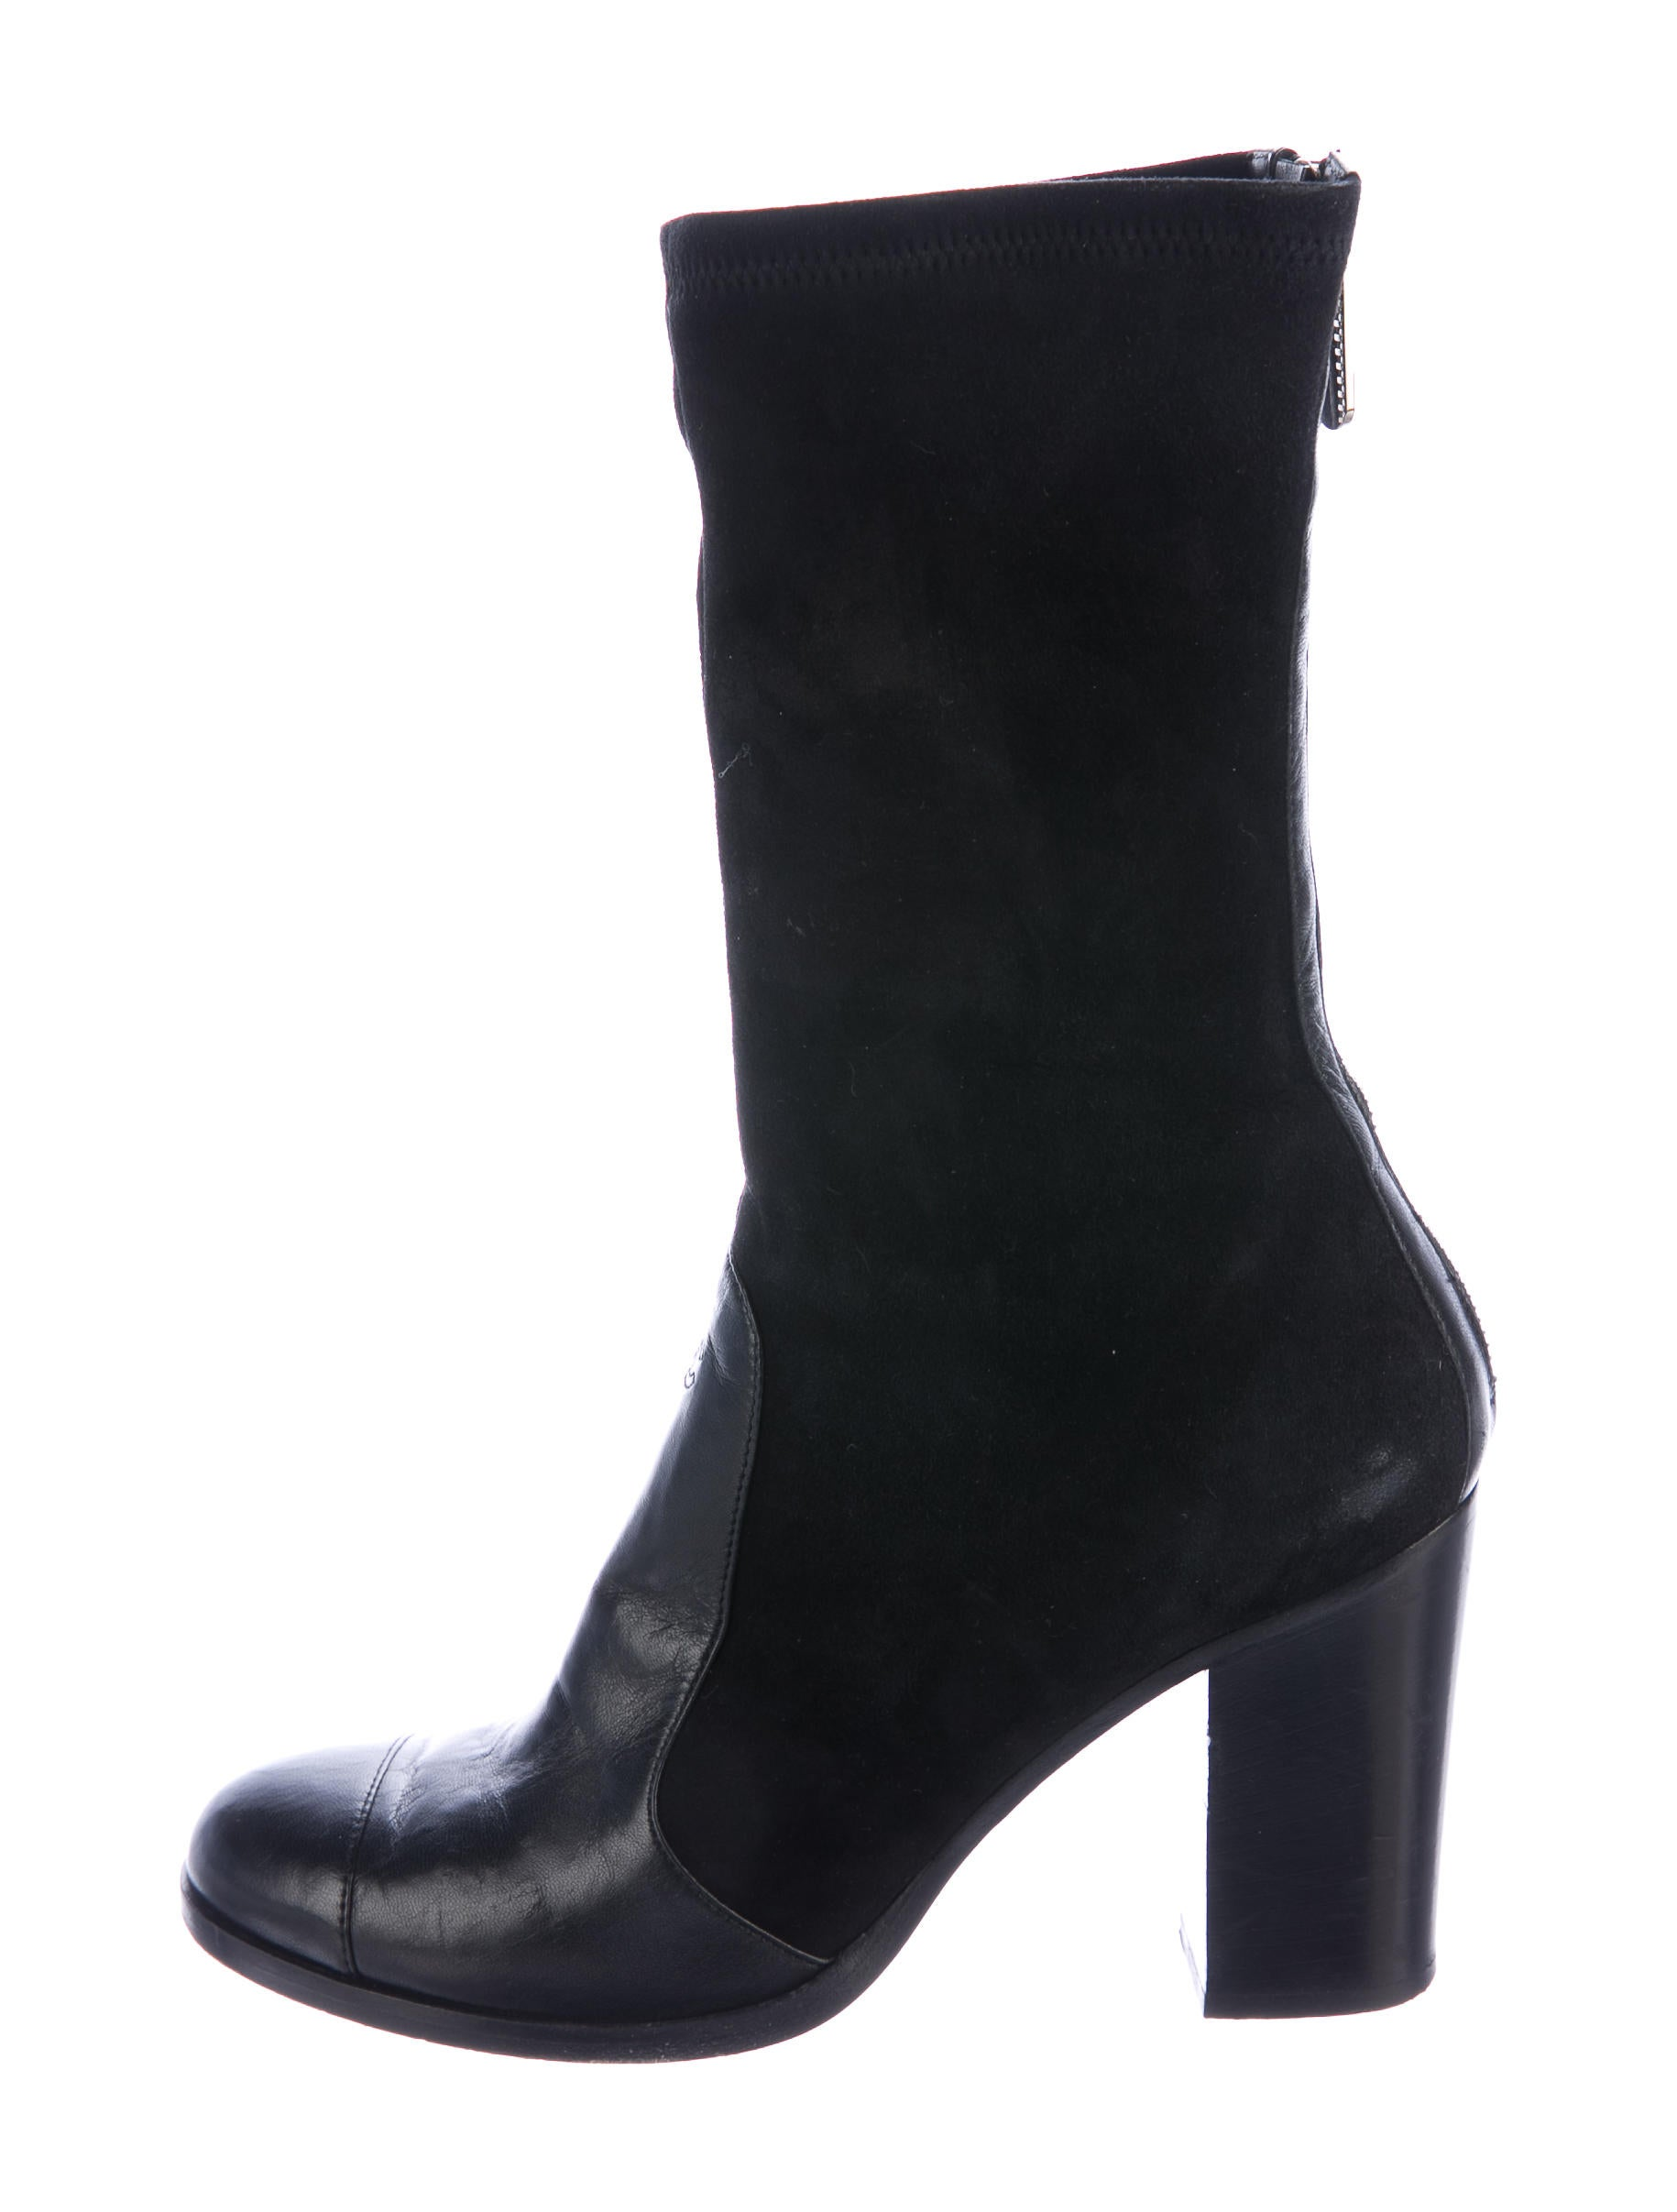 chanel suede cc ankle boots shoes cha189971 the realreal